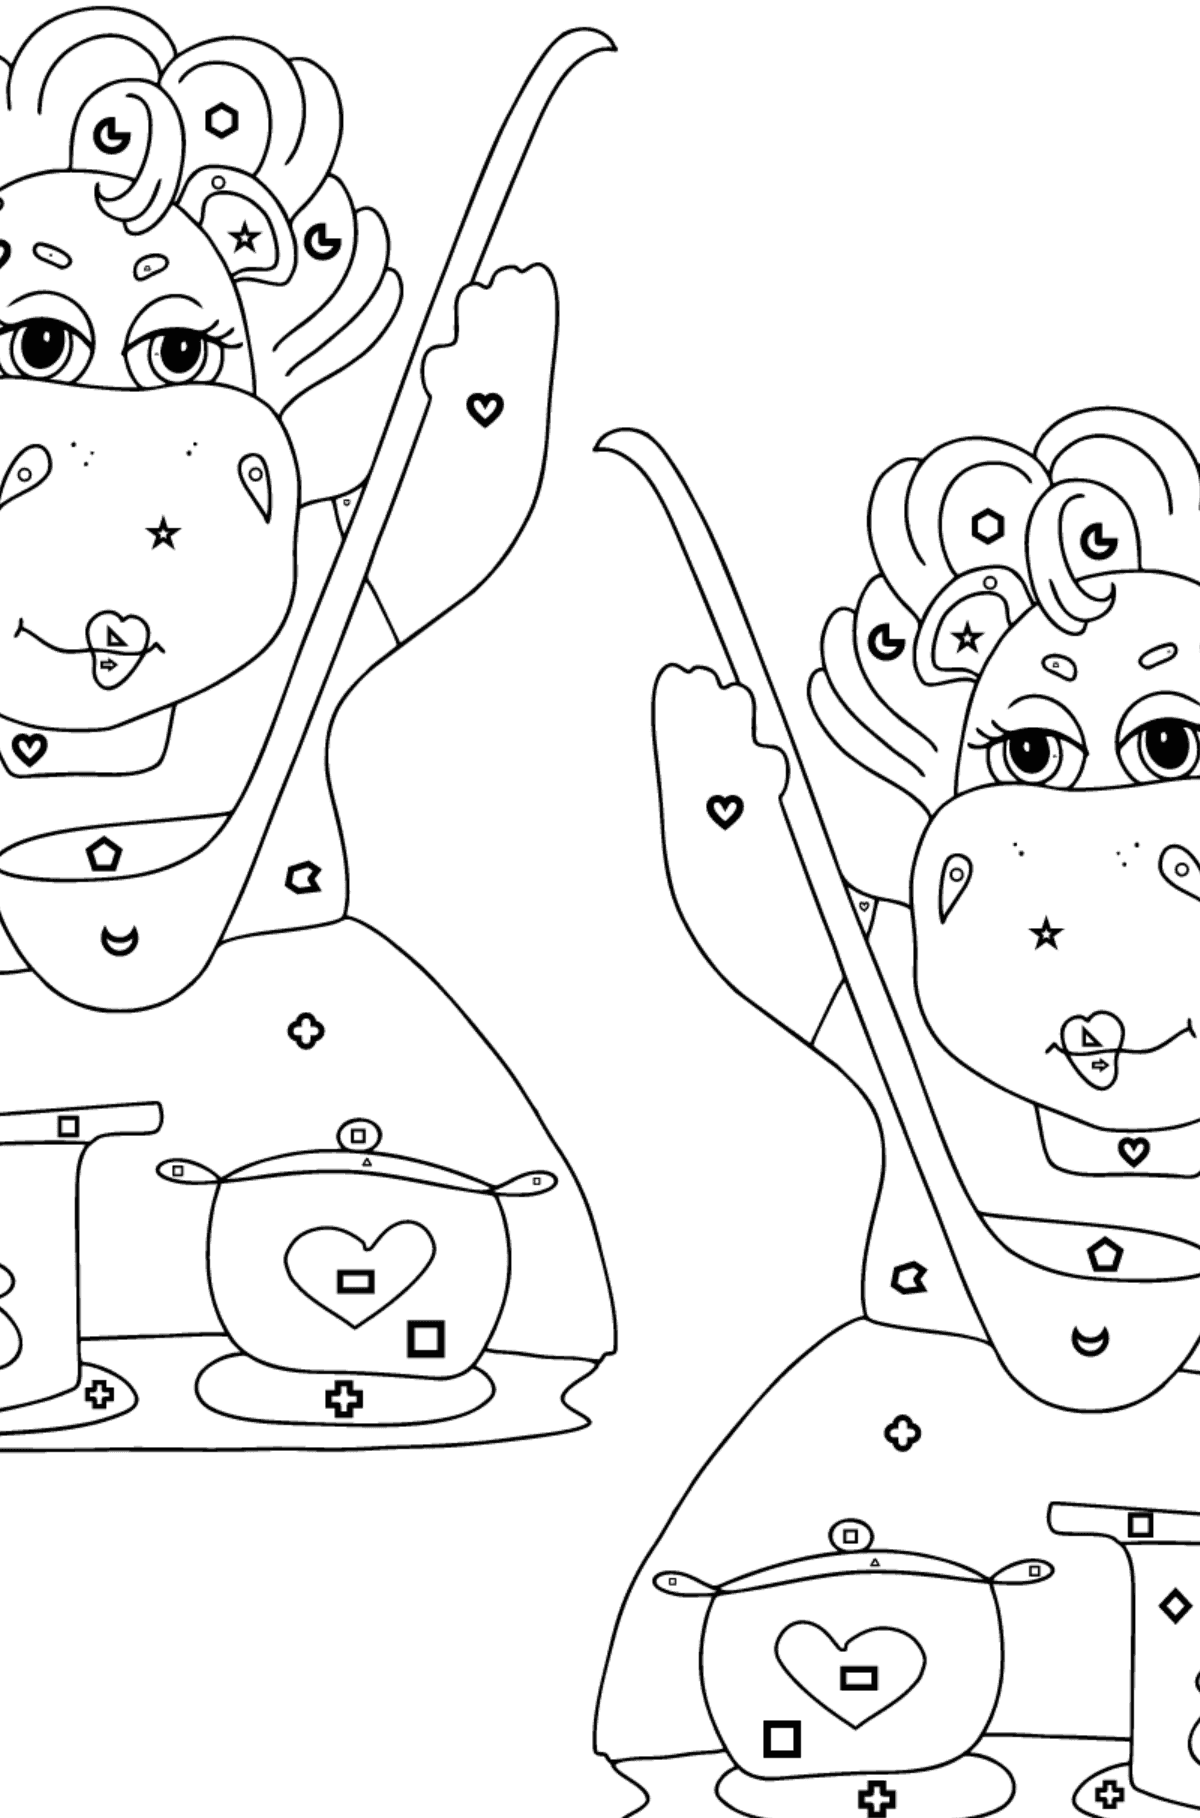 Coloring Page - Hippos are Cooking a Delicious Lunch for Children  - Color by Geometric Shapes